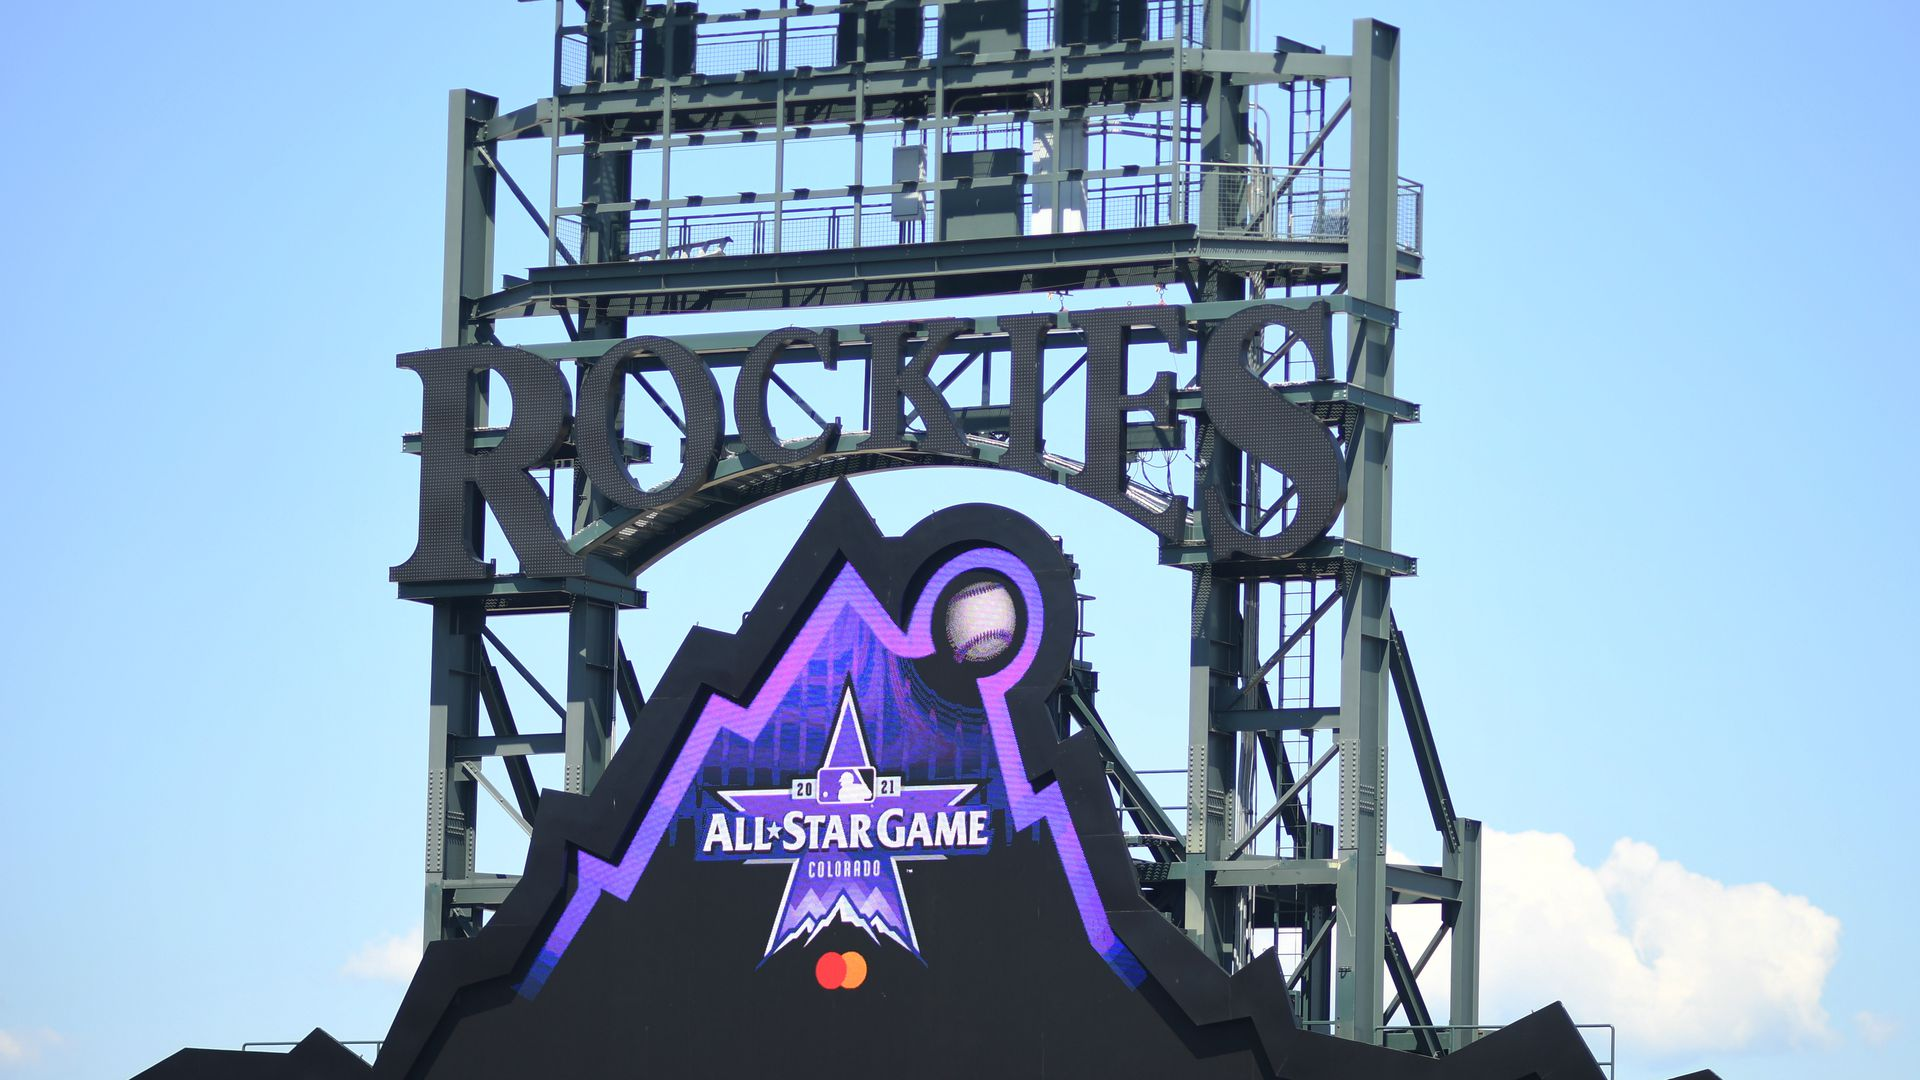 A photo of the Colorado Rockies sign a All-Star Game logo